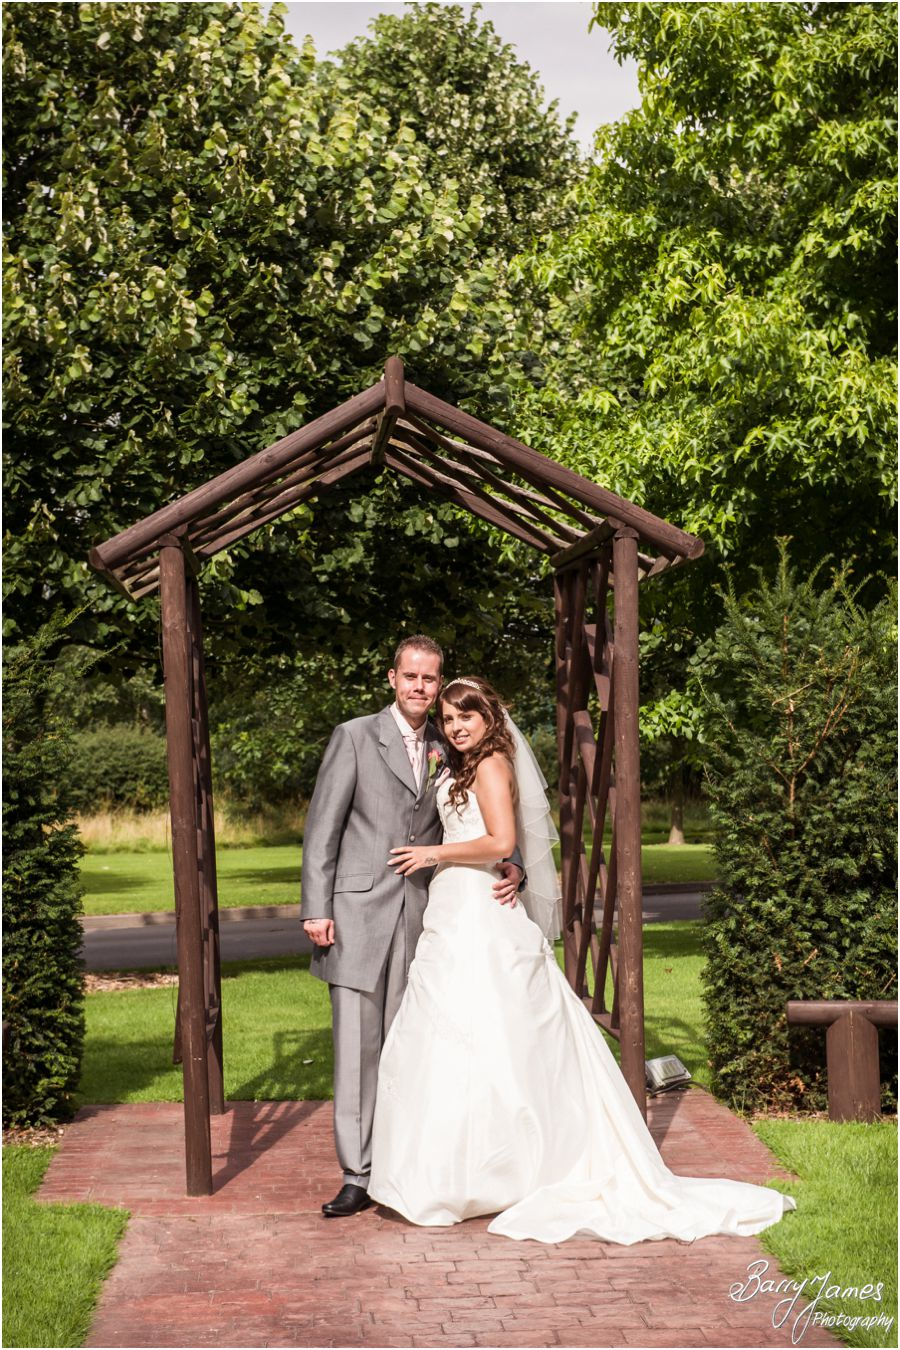 Stunning affordable wedding photography at The Fairlawns in Walsall by Exclsuive Mid Week Packages available from Walsall Wedding Photographer Barry James